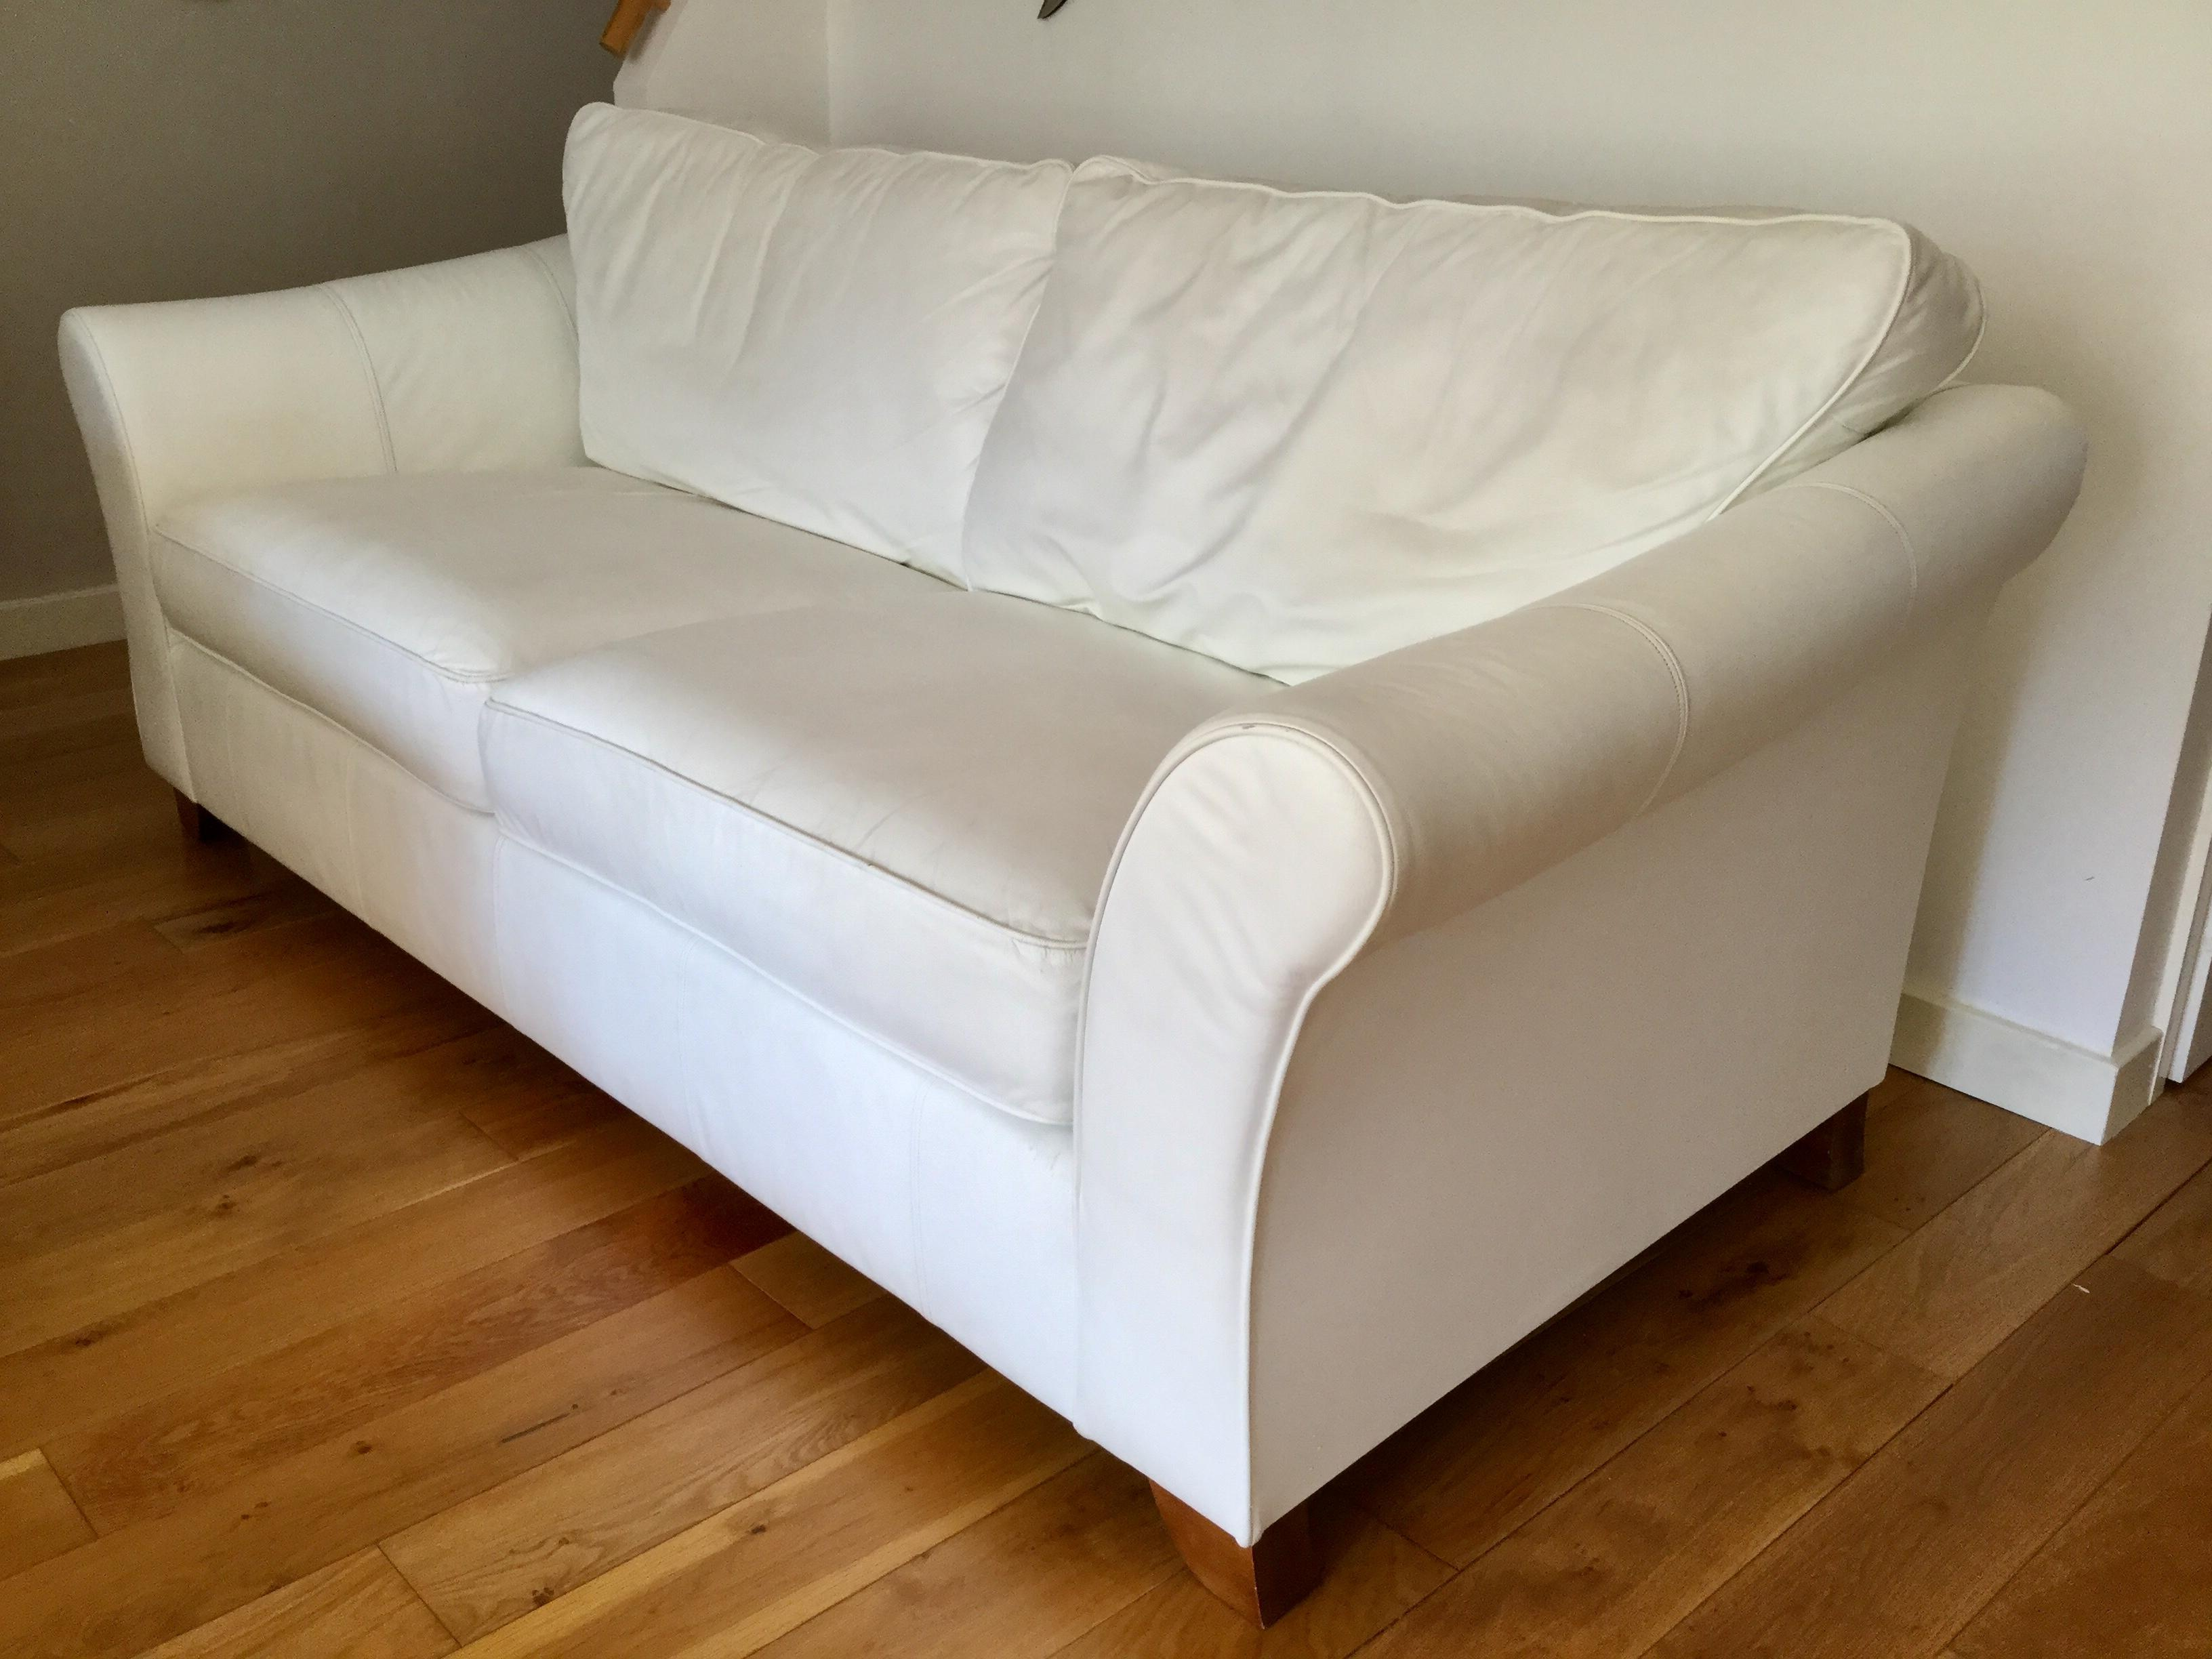 Brilliant Quality Marksspencer Large White Leather Sofa In Seaview Theyellowbook Wood Chair Design Ideas Theyellowbookinfo